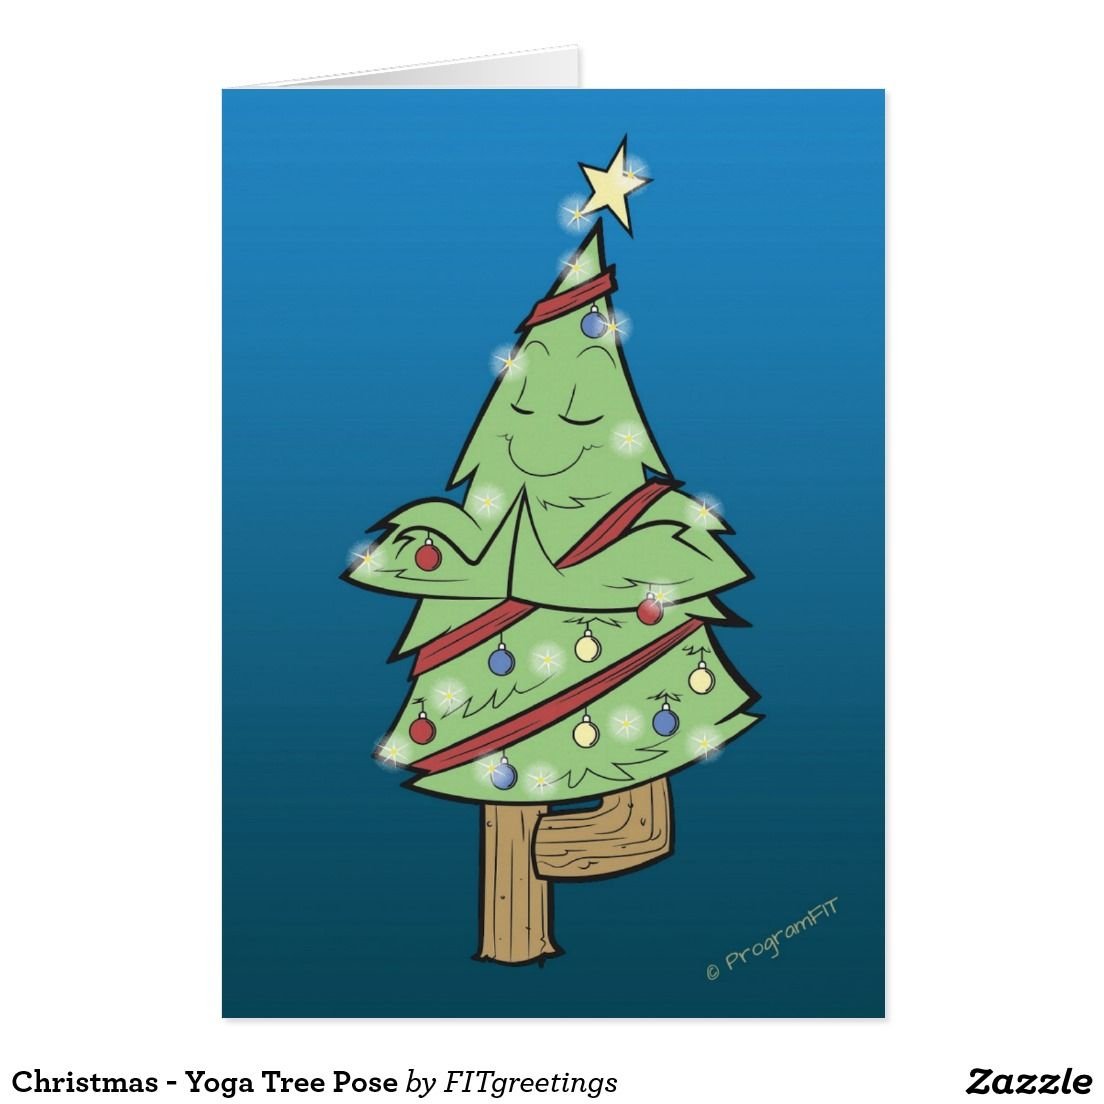 Christmas Yoga Tree Pose Holiday Card Zazzle Com Yoga Tree Pose Yoga Tree Holiday Design Card Lift up your arms and make #prayer position. christmas yoga tree pose holiday card